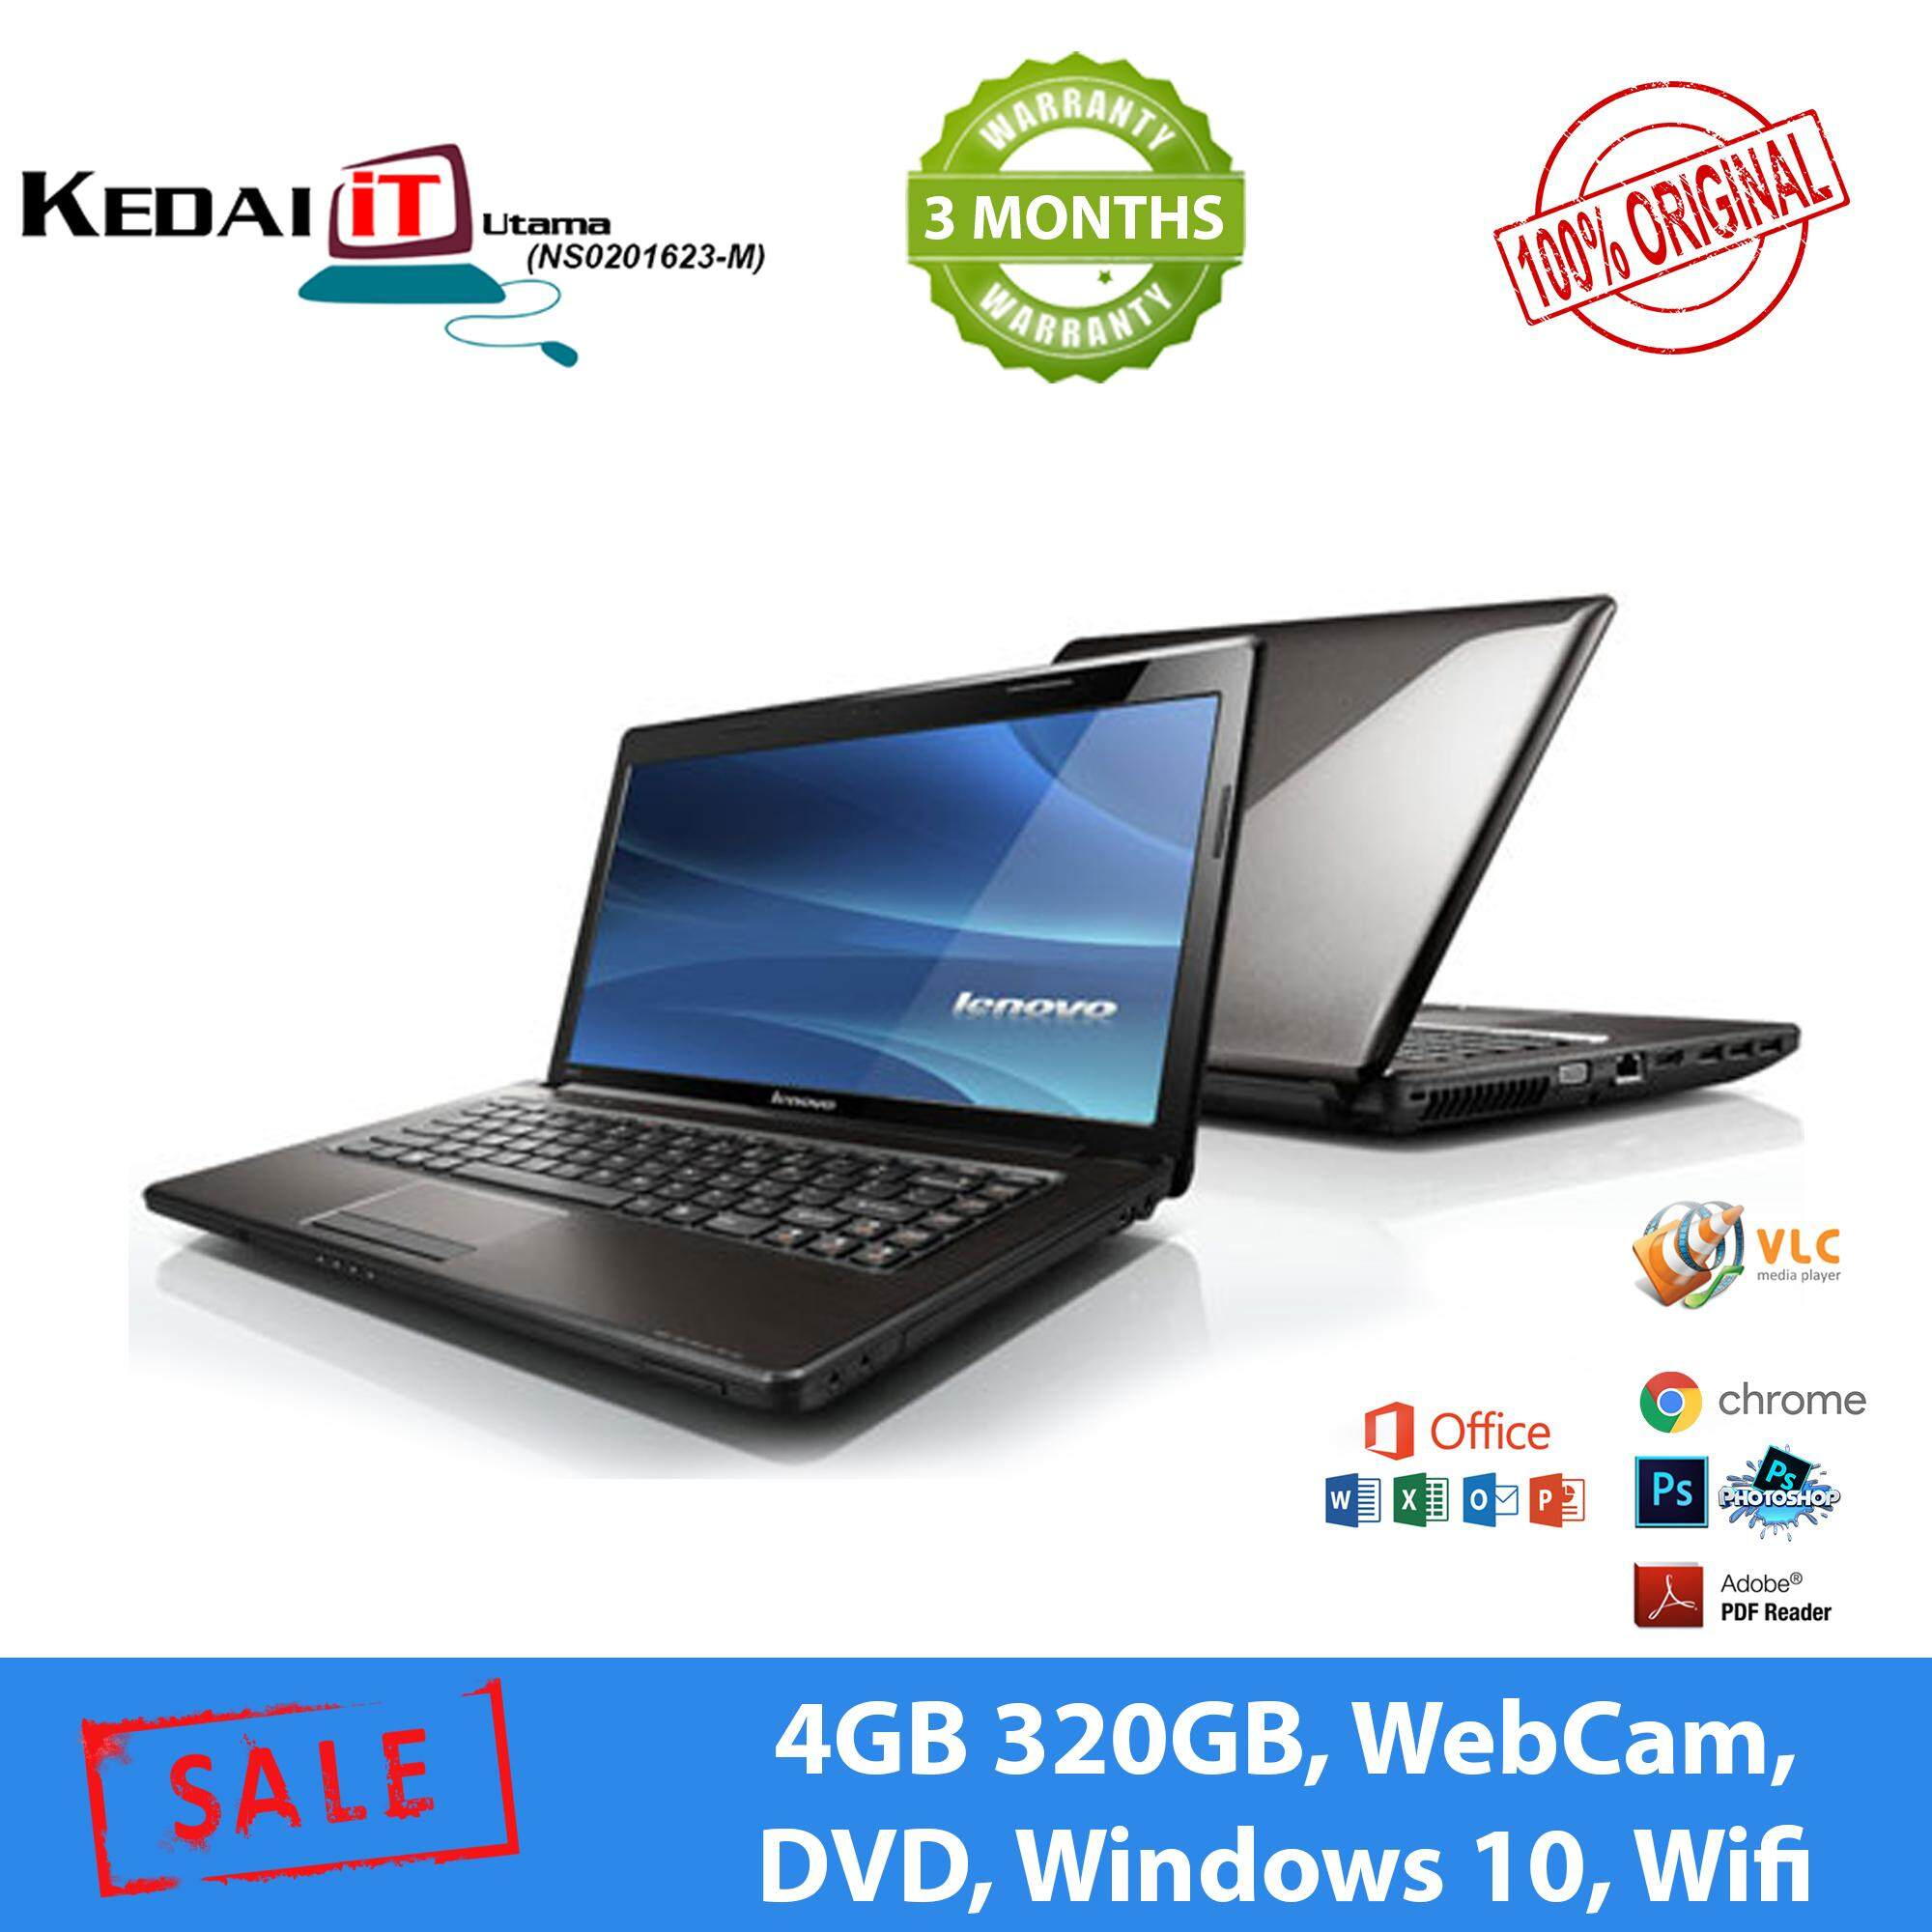 Lenovo i5 Laptop - G470 - 4GB RAM, 320GB HDD, WebCam, Wifi , Windows 10, 3 Months Warranty  + FreeBag , Mouse (Refurbished) Malaysia